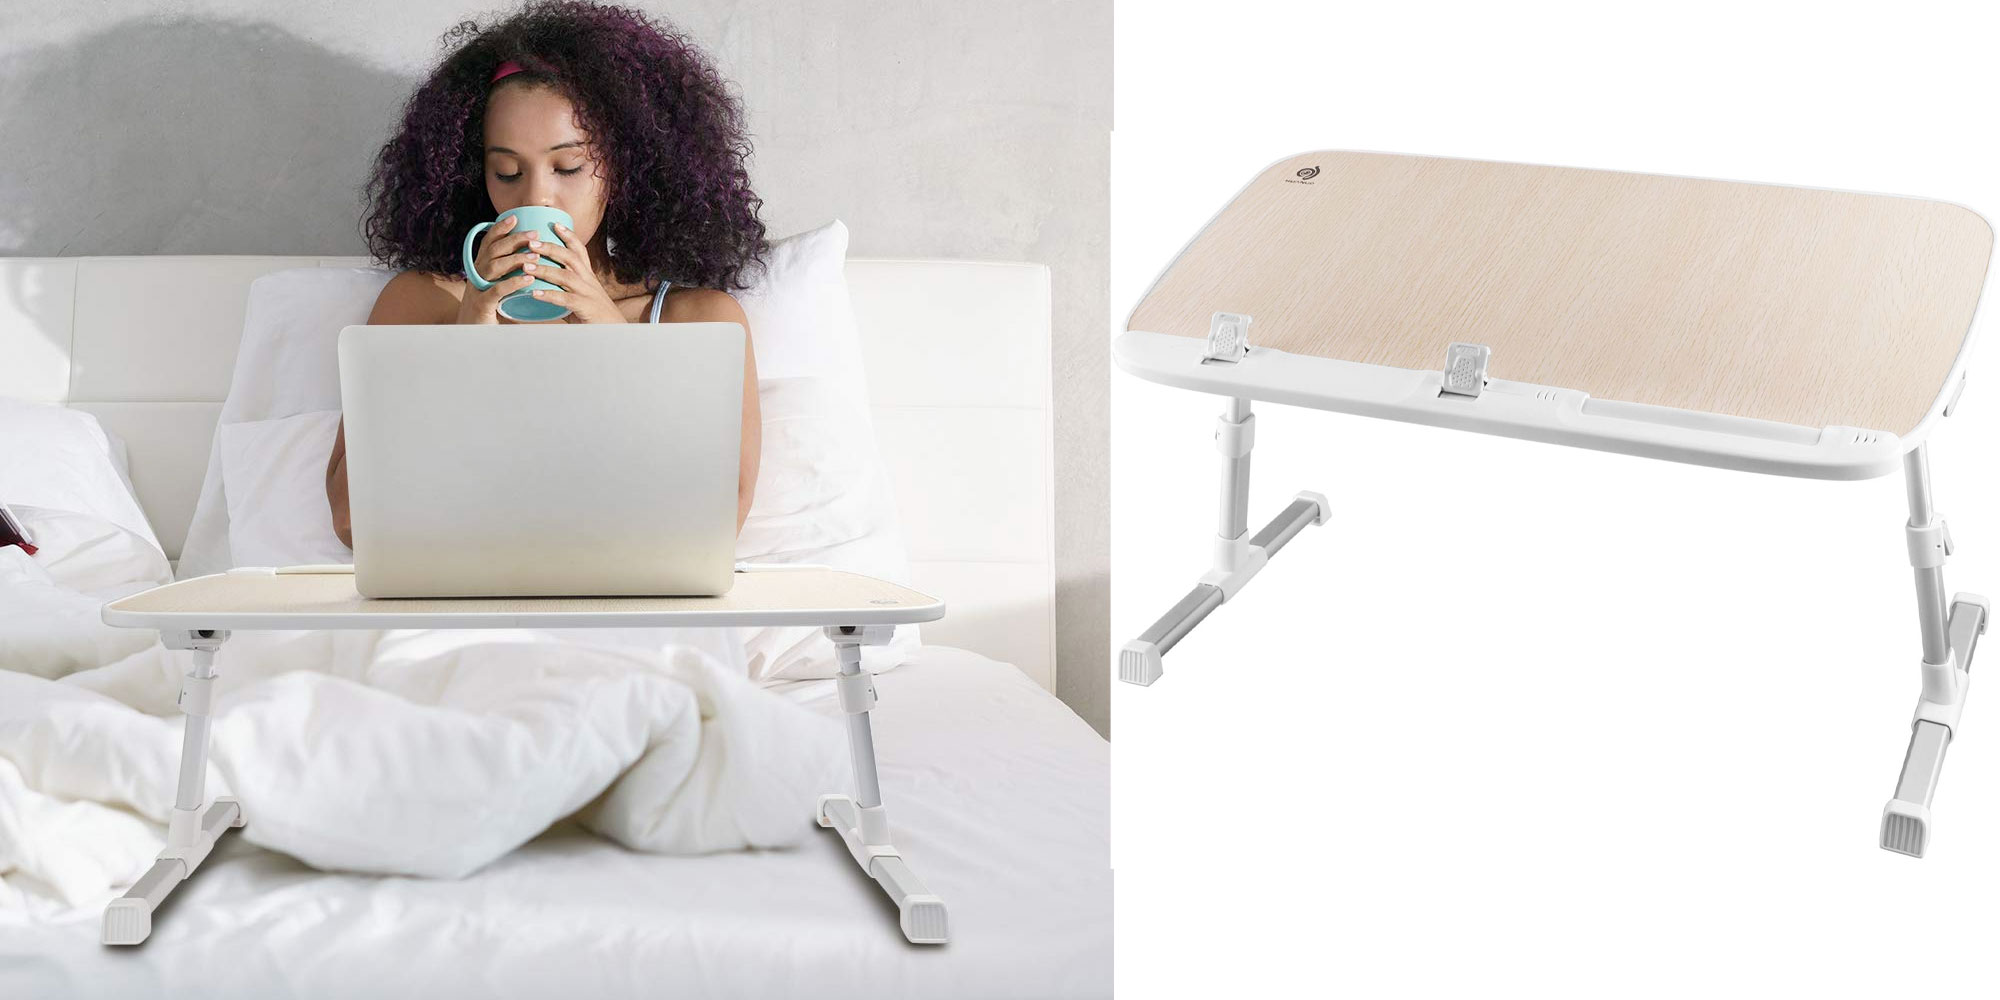 Become productive from bed w/ this adjustable laptop tray for $28 shipped (New Amazon low)